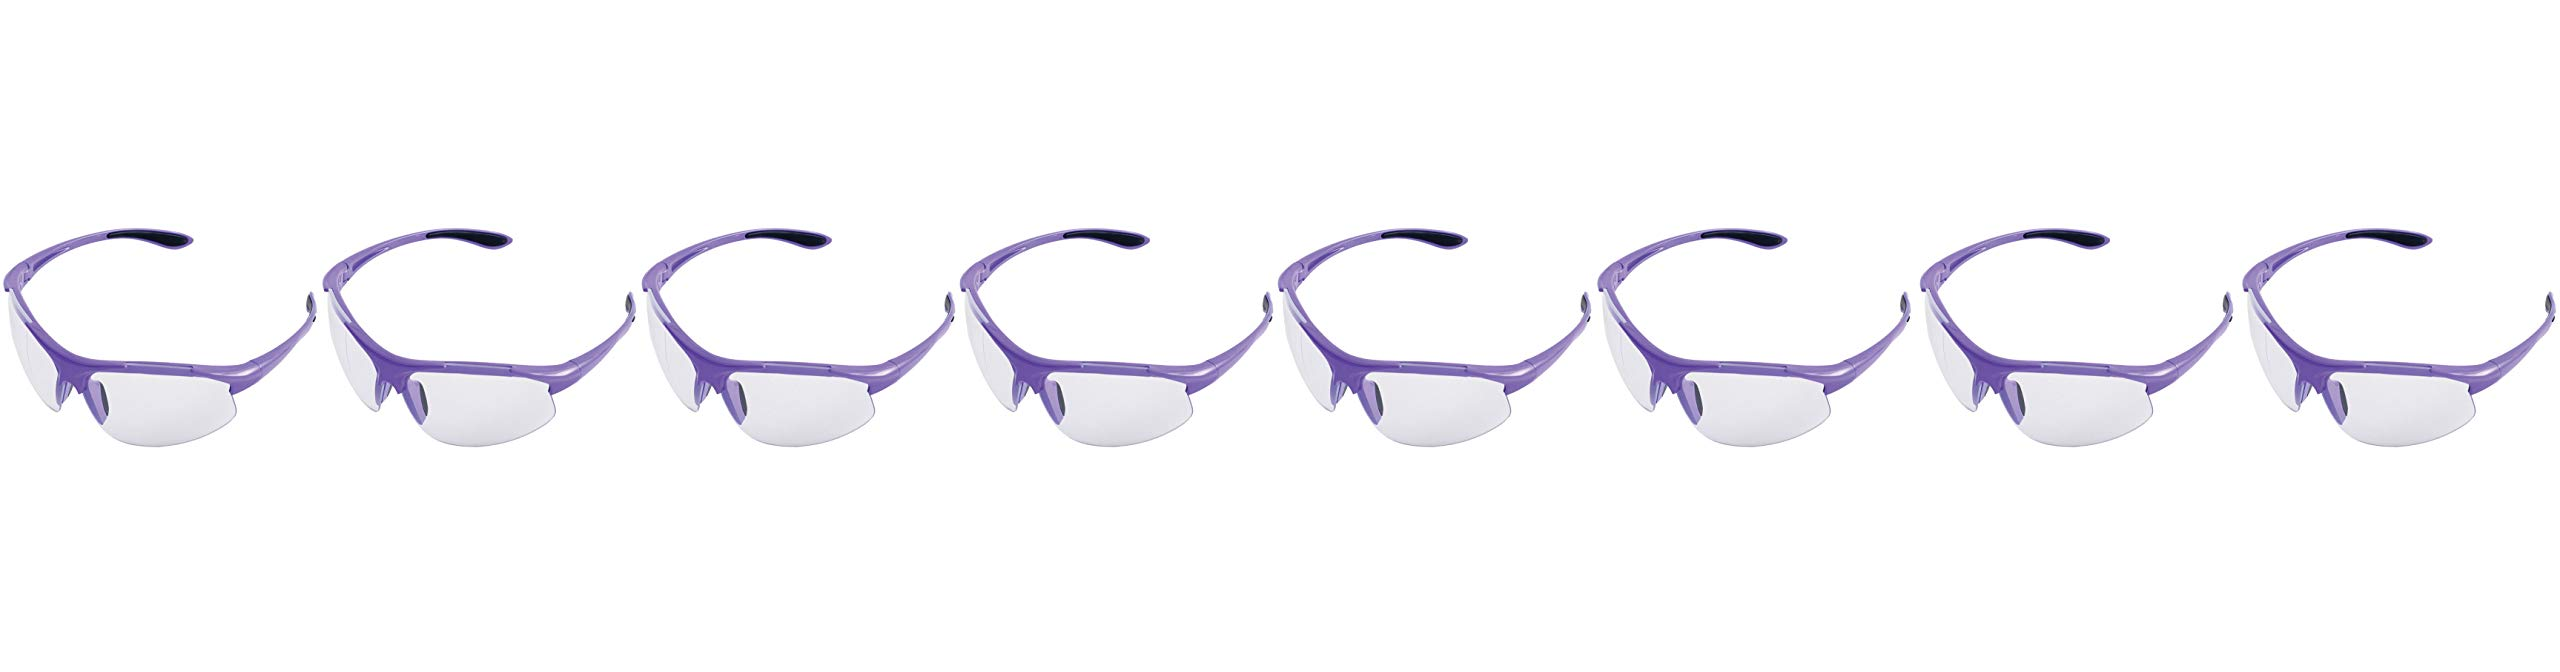 ERB Safety Products 18624 Ella Safety Glasses, Anti Scratch Clear Lens, 9.625'' Height, 2'' Wide, 4.5'' Length, Plastic, One Size, Purple (Еight Рack) by ERB